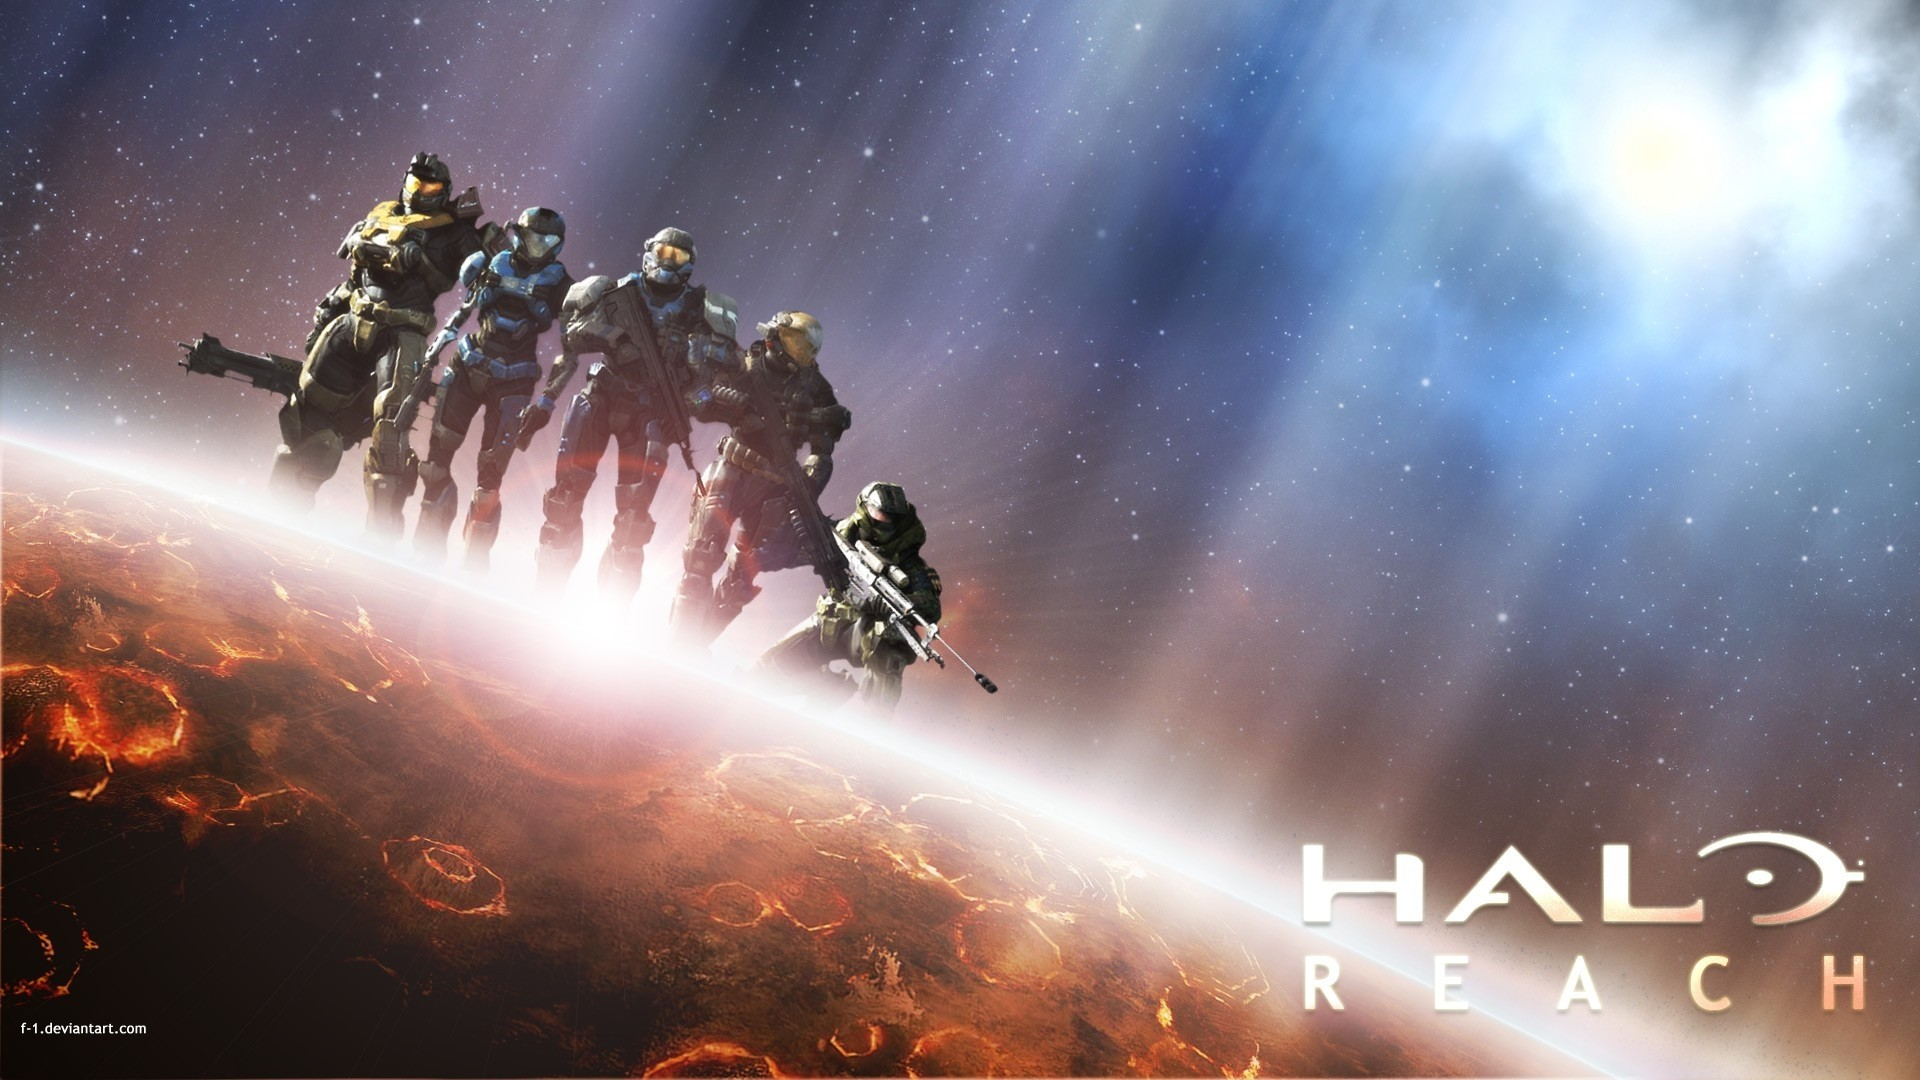 Halo Reach Wallpaper and Background